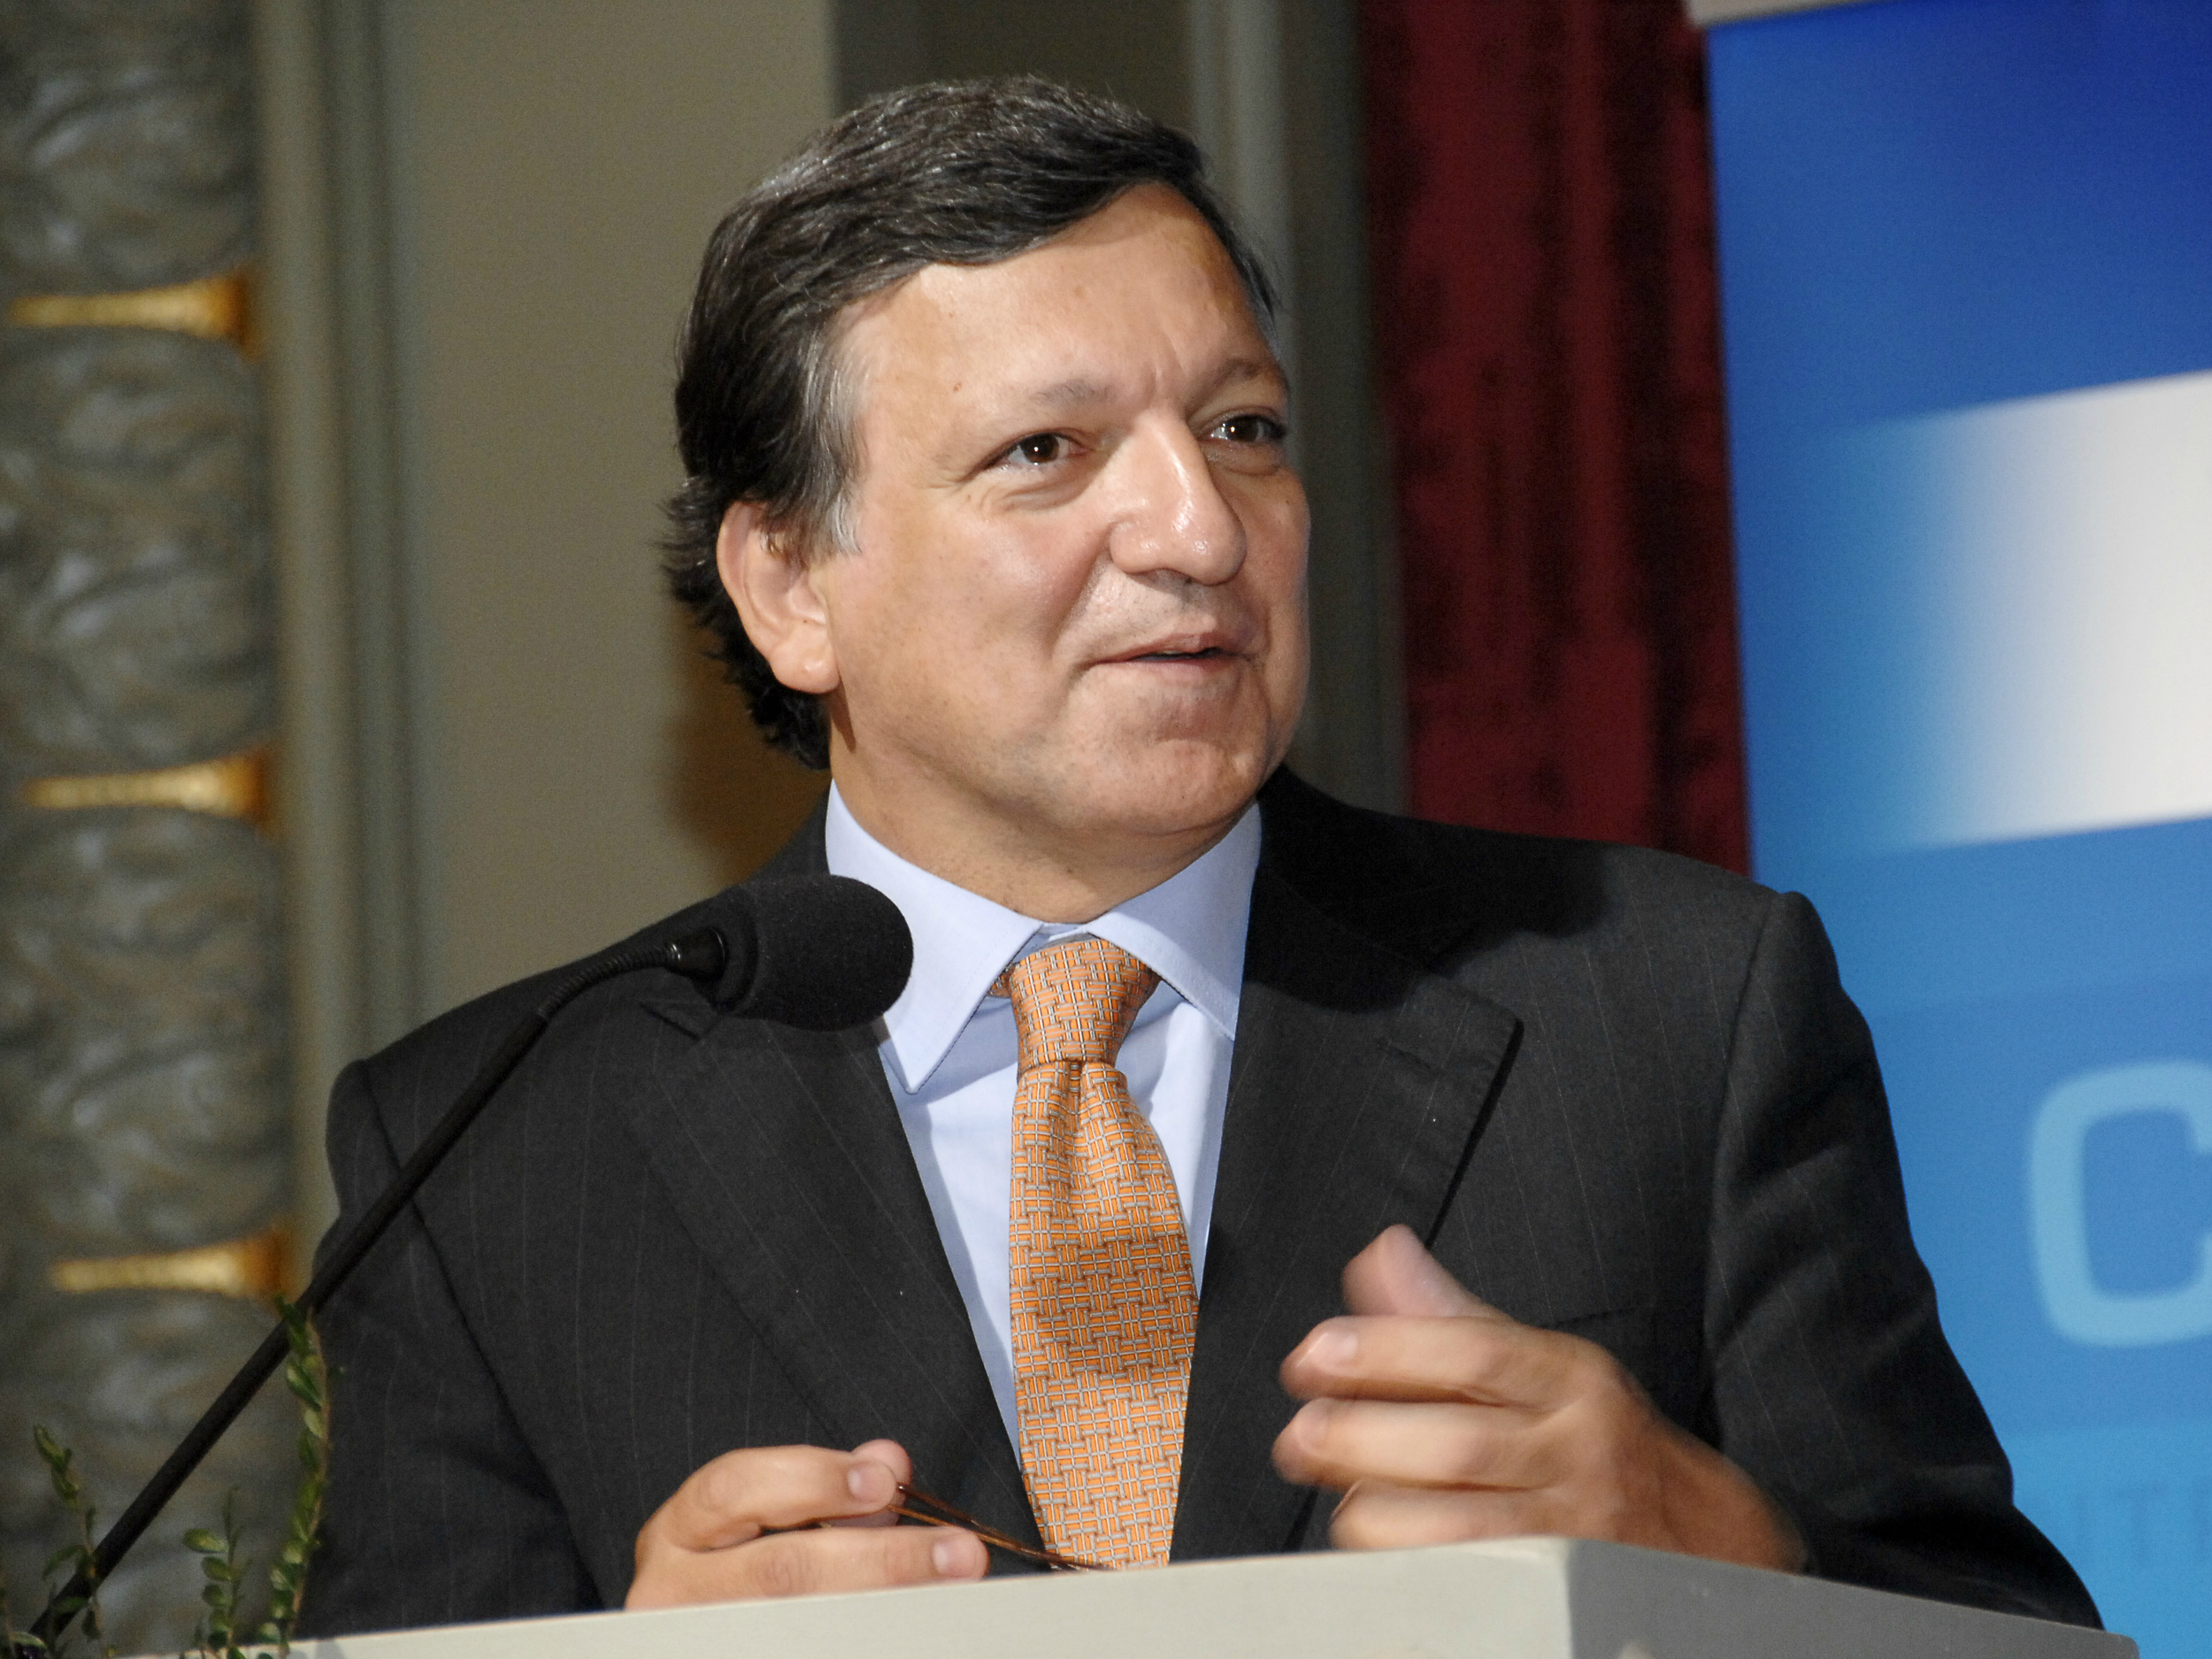 José Manuel Barroso - 11th President of the European Commission